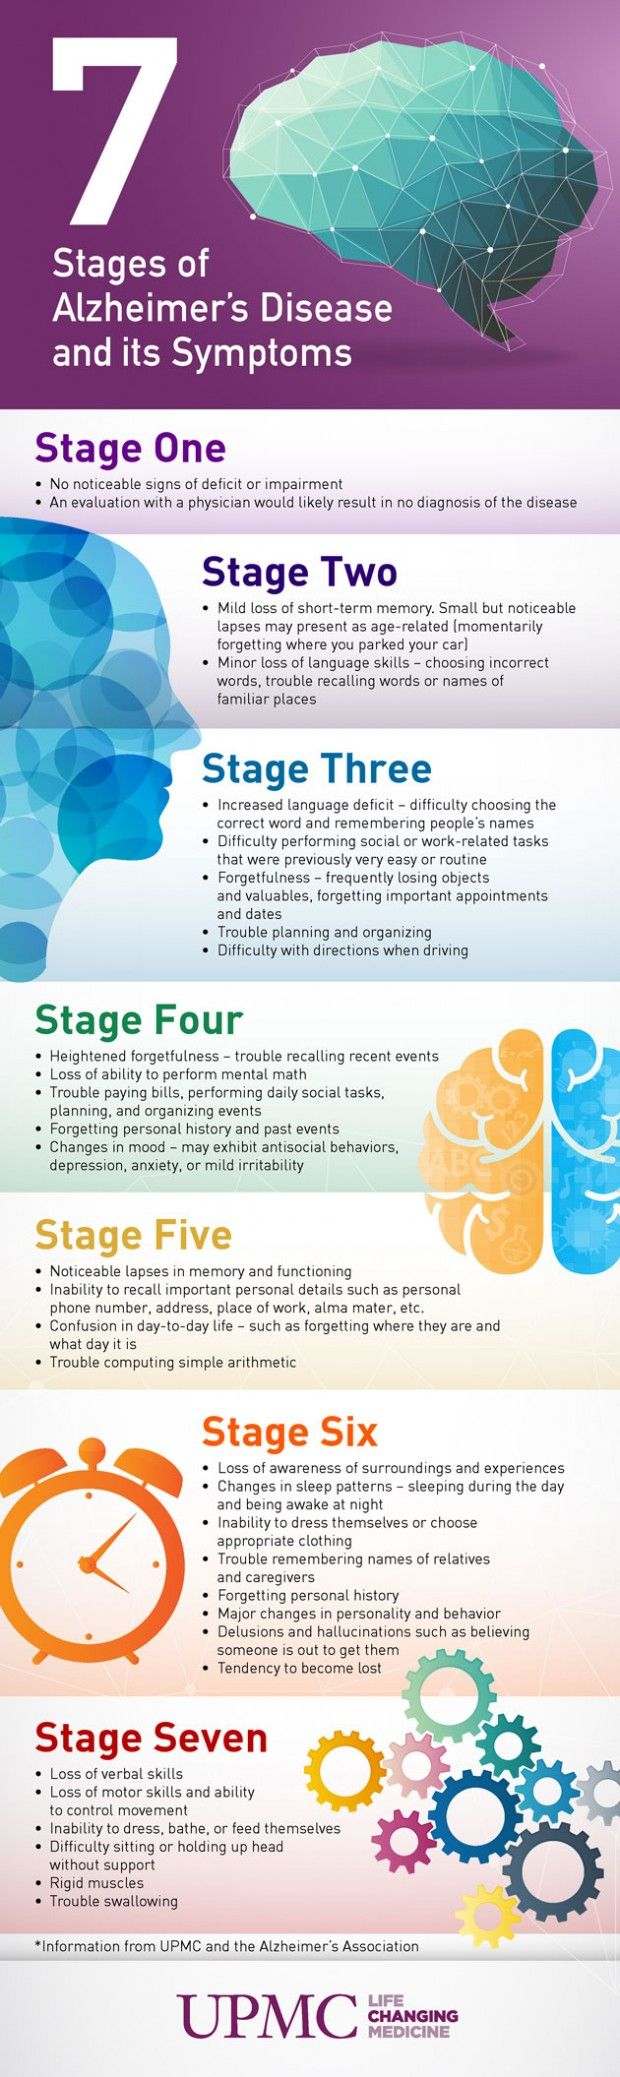 7 Stages of Alzheimers Disease Infographic